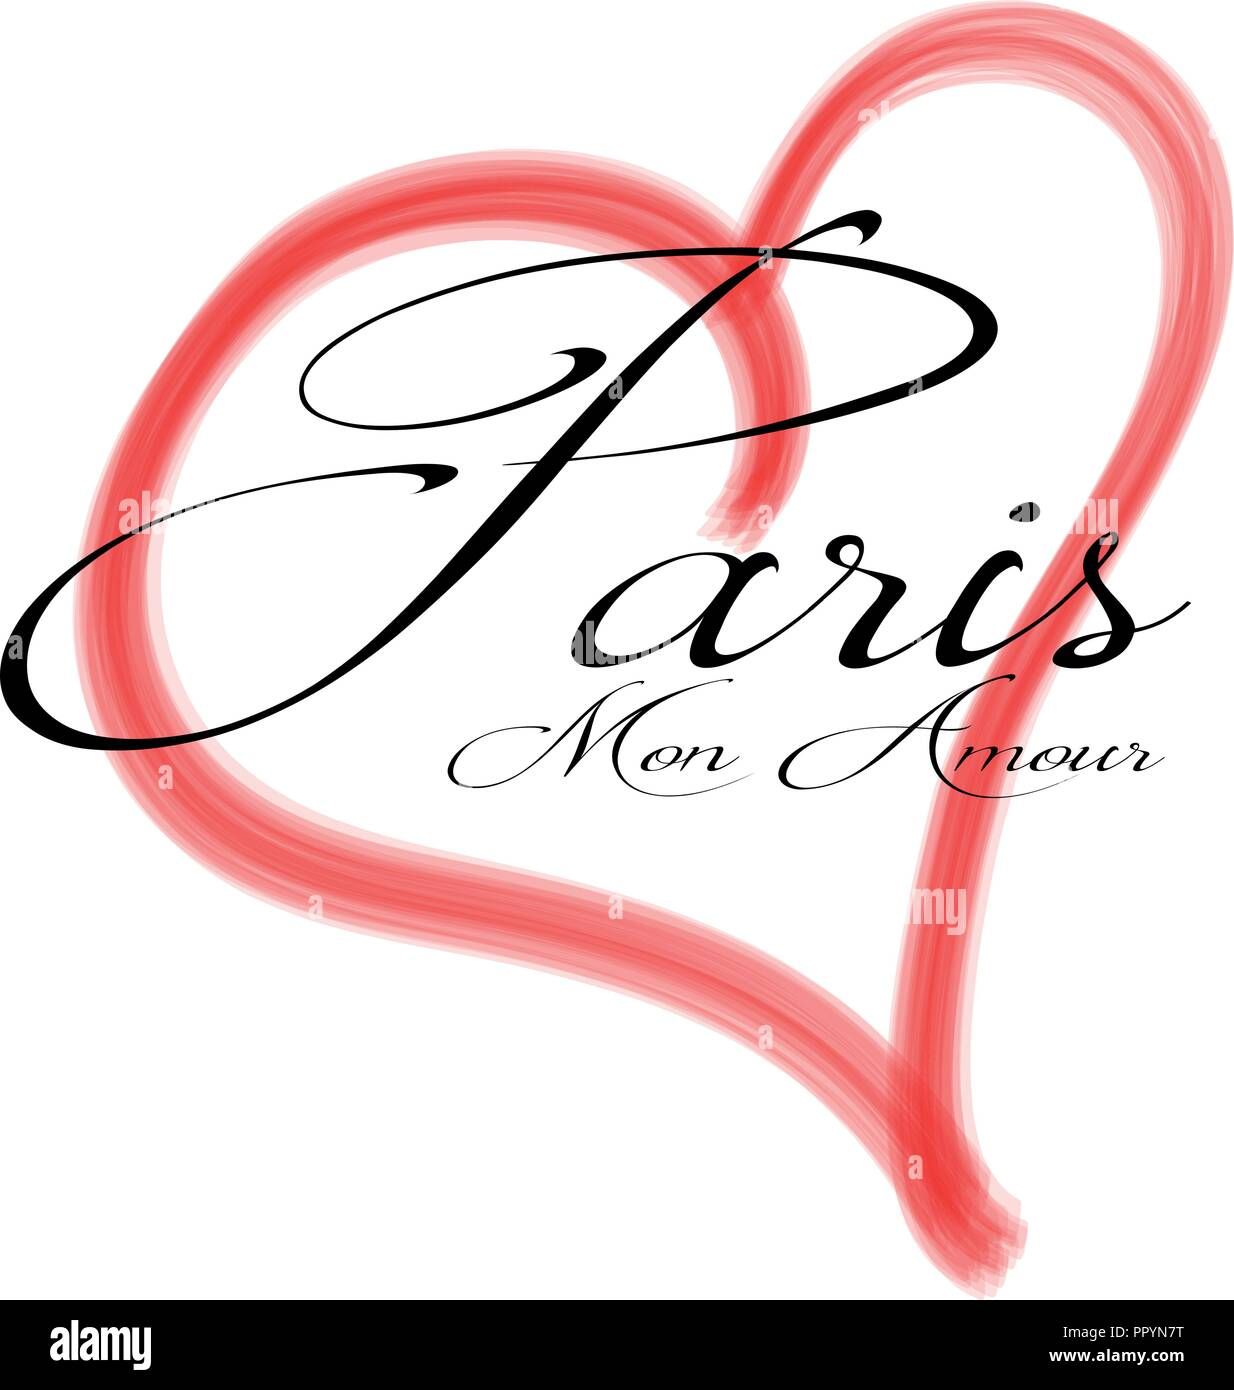 Paris Mon Amour in a red heart - Vector - Stock Image